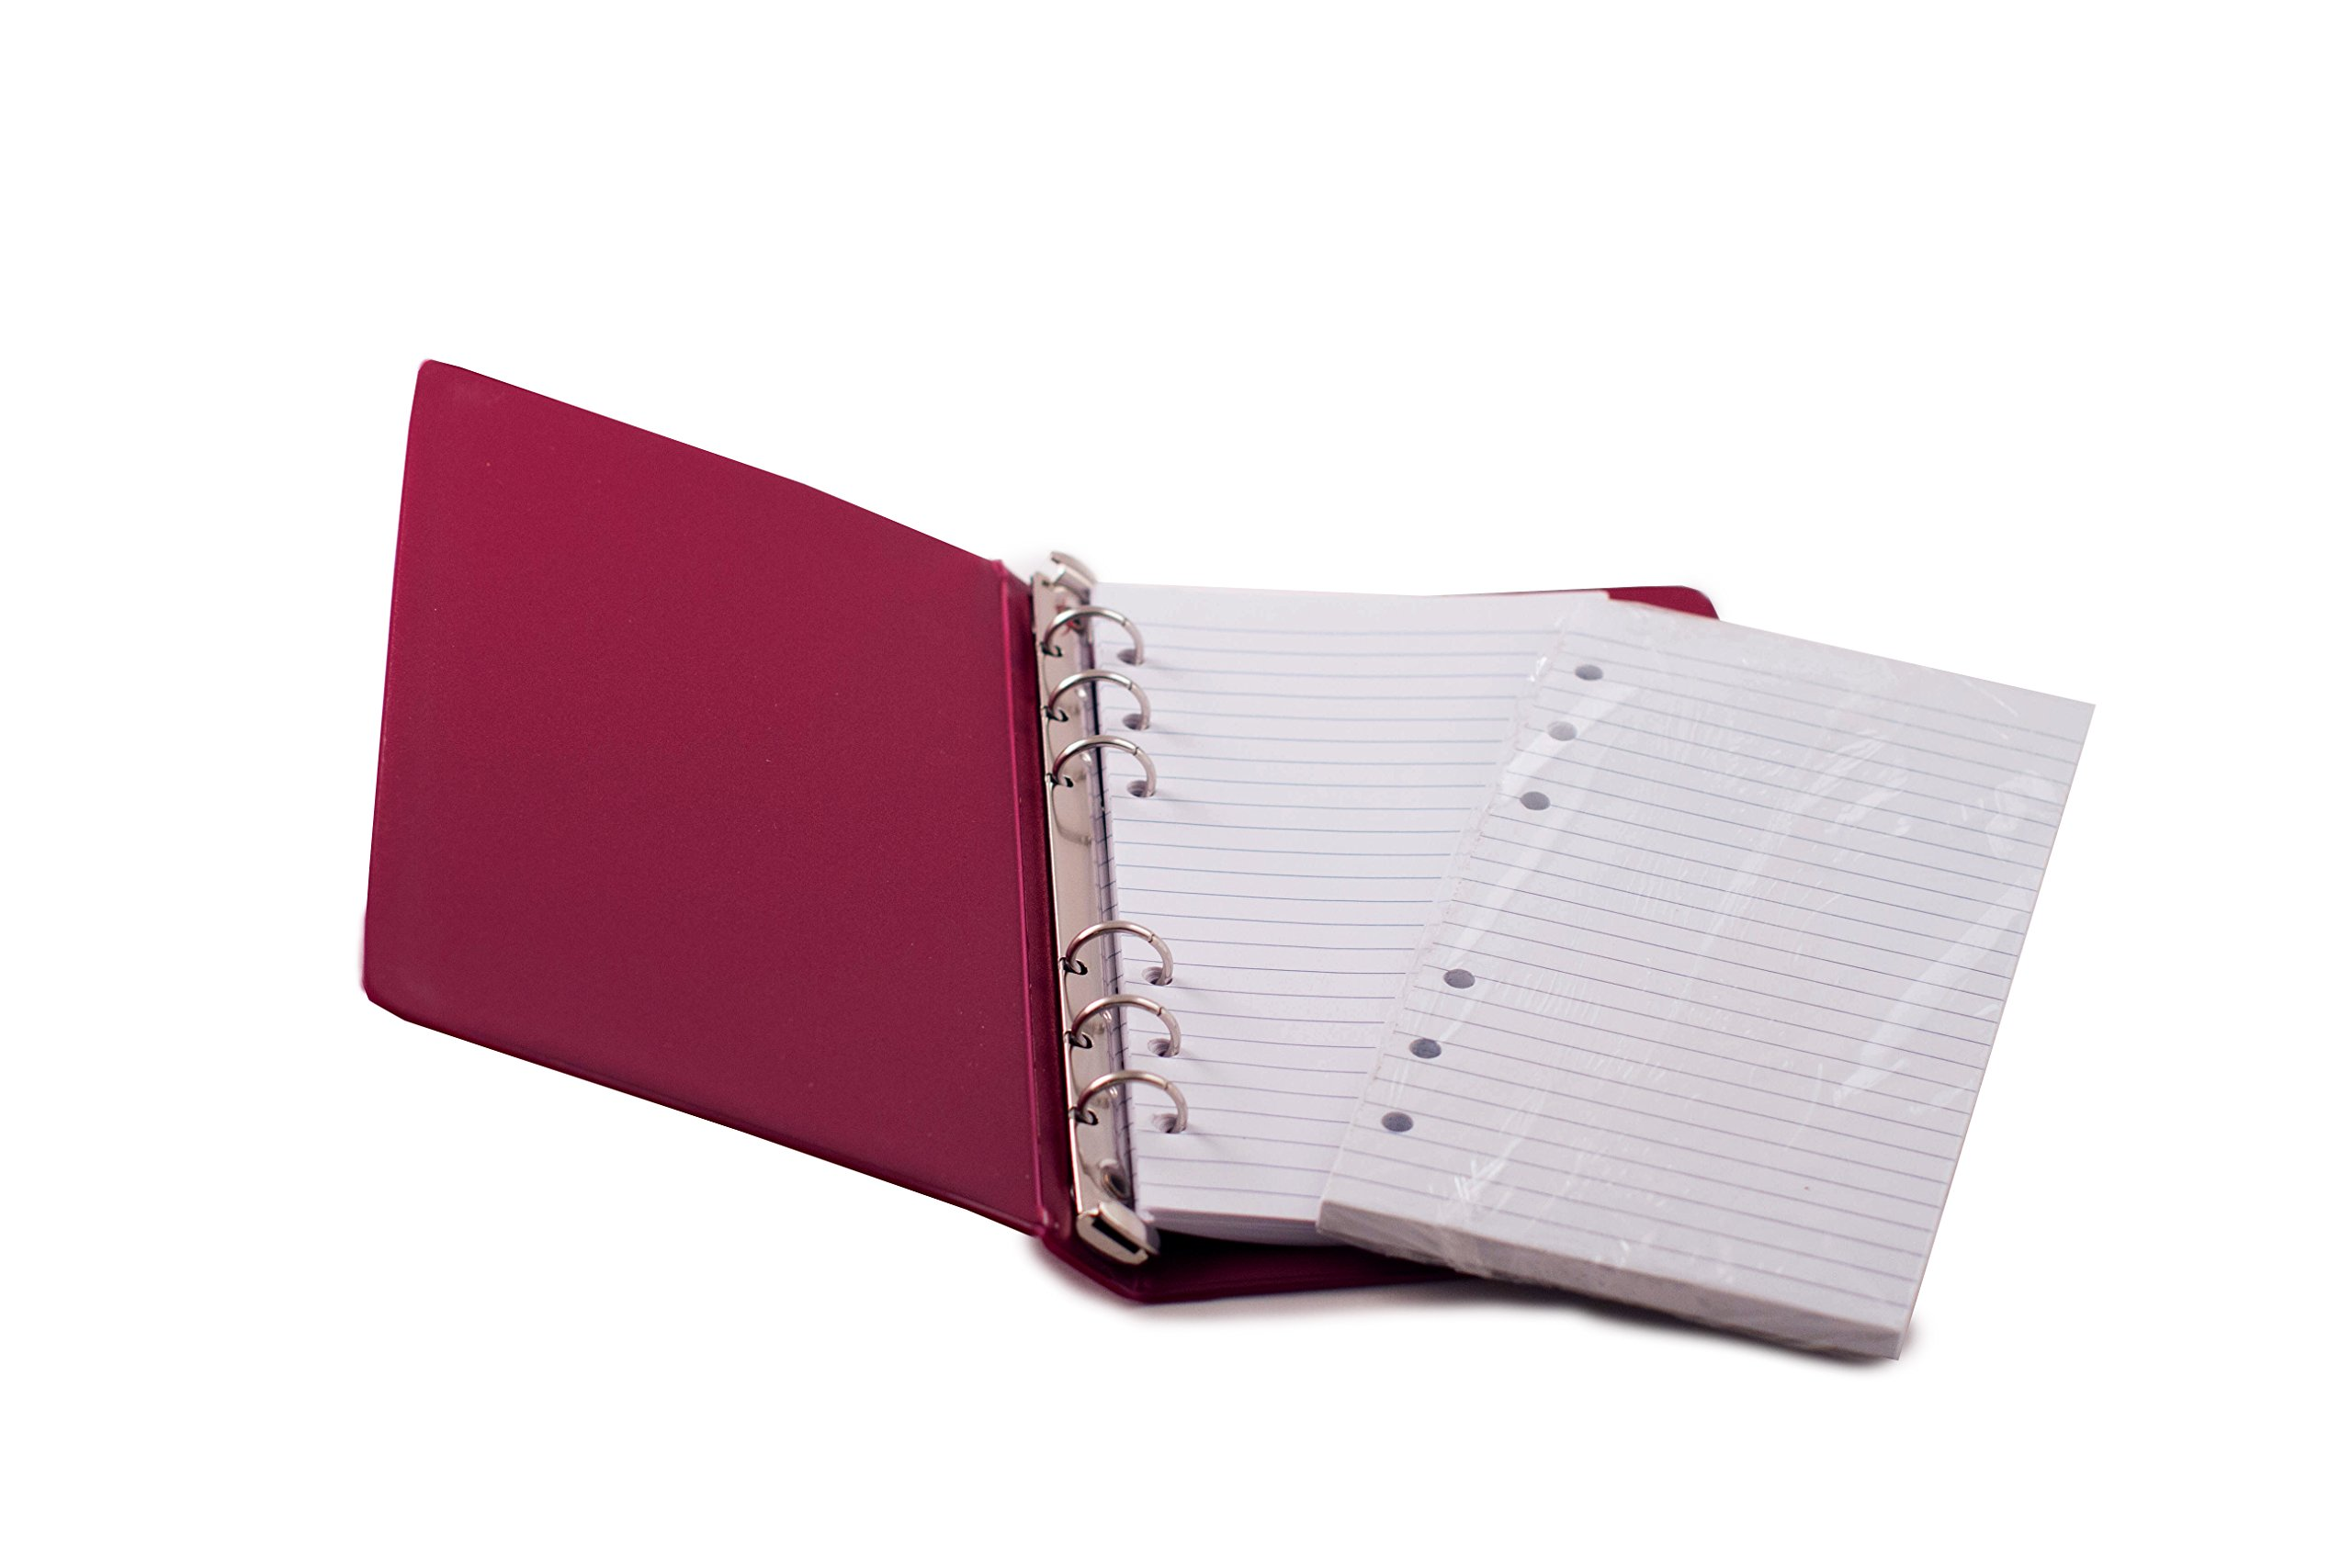 HNR RED Loose-Leaf Memo Book, 6 3/4 x 3 3/4'', 6-Ring Binder, 80 Pages + Free Refill 80 Pages